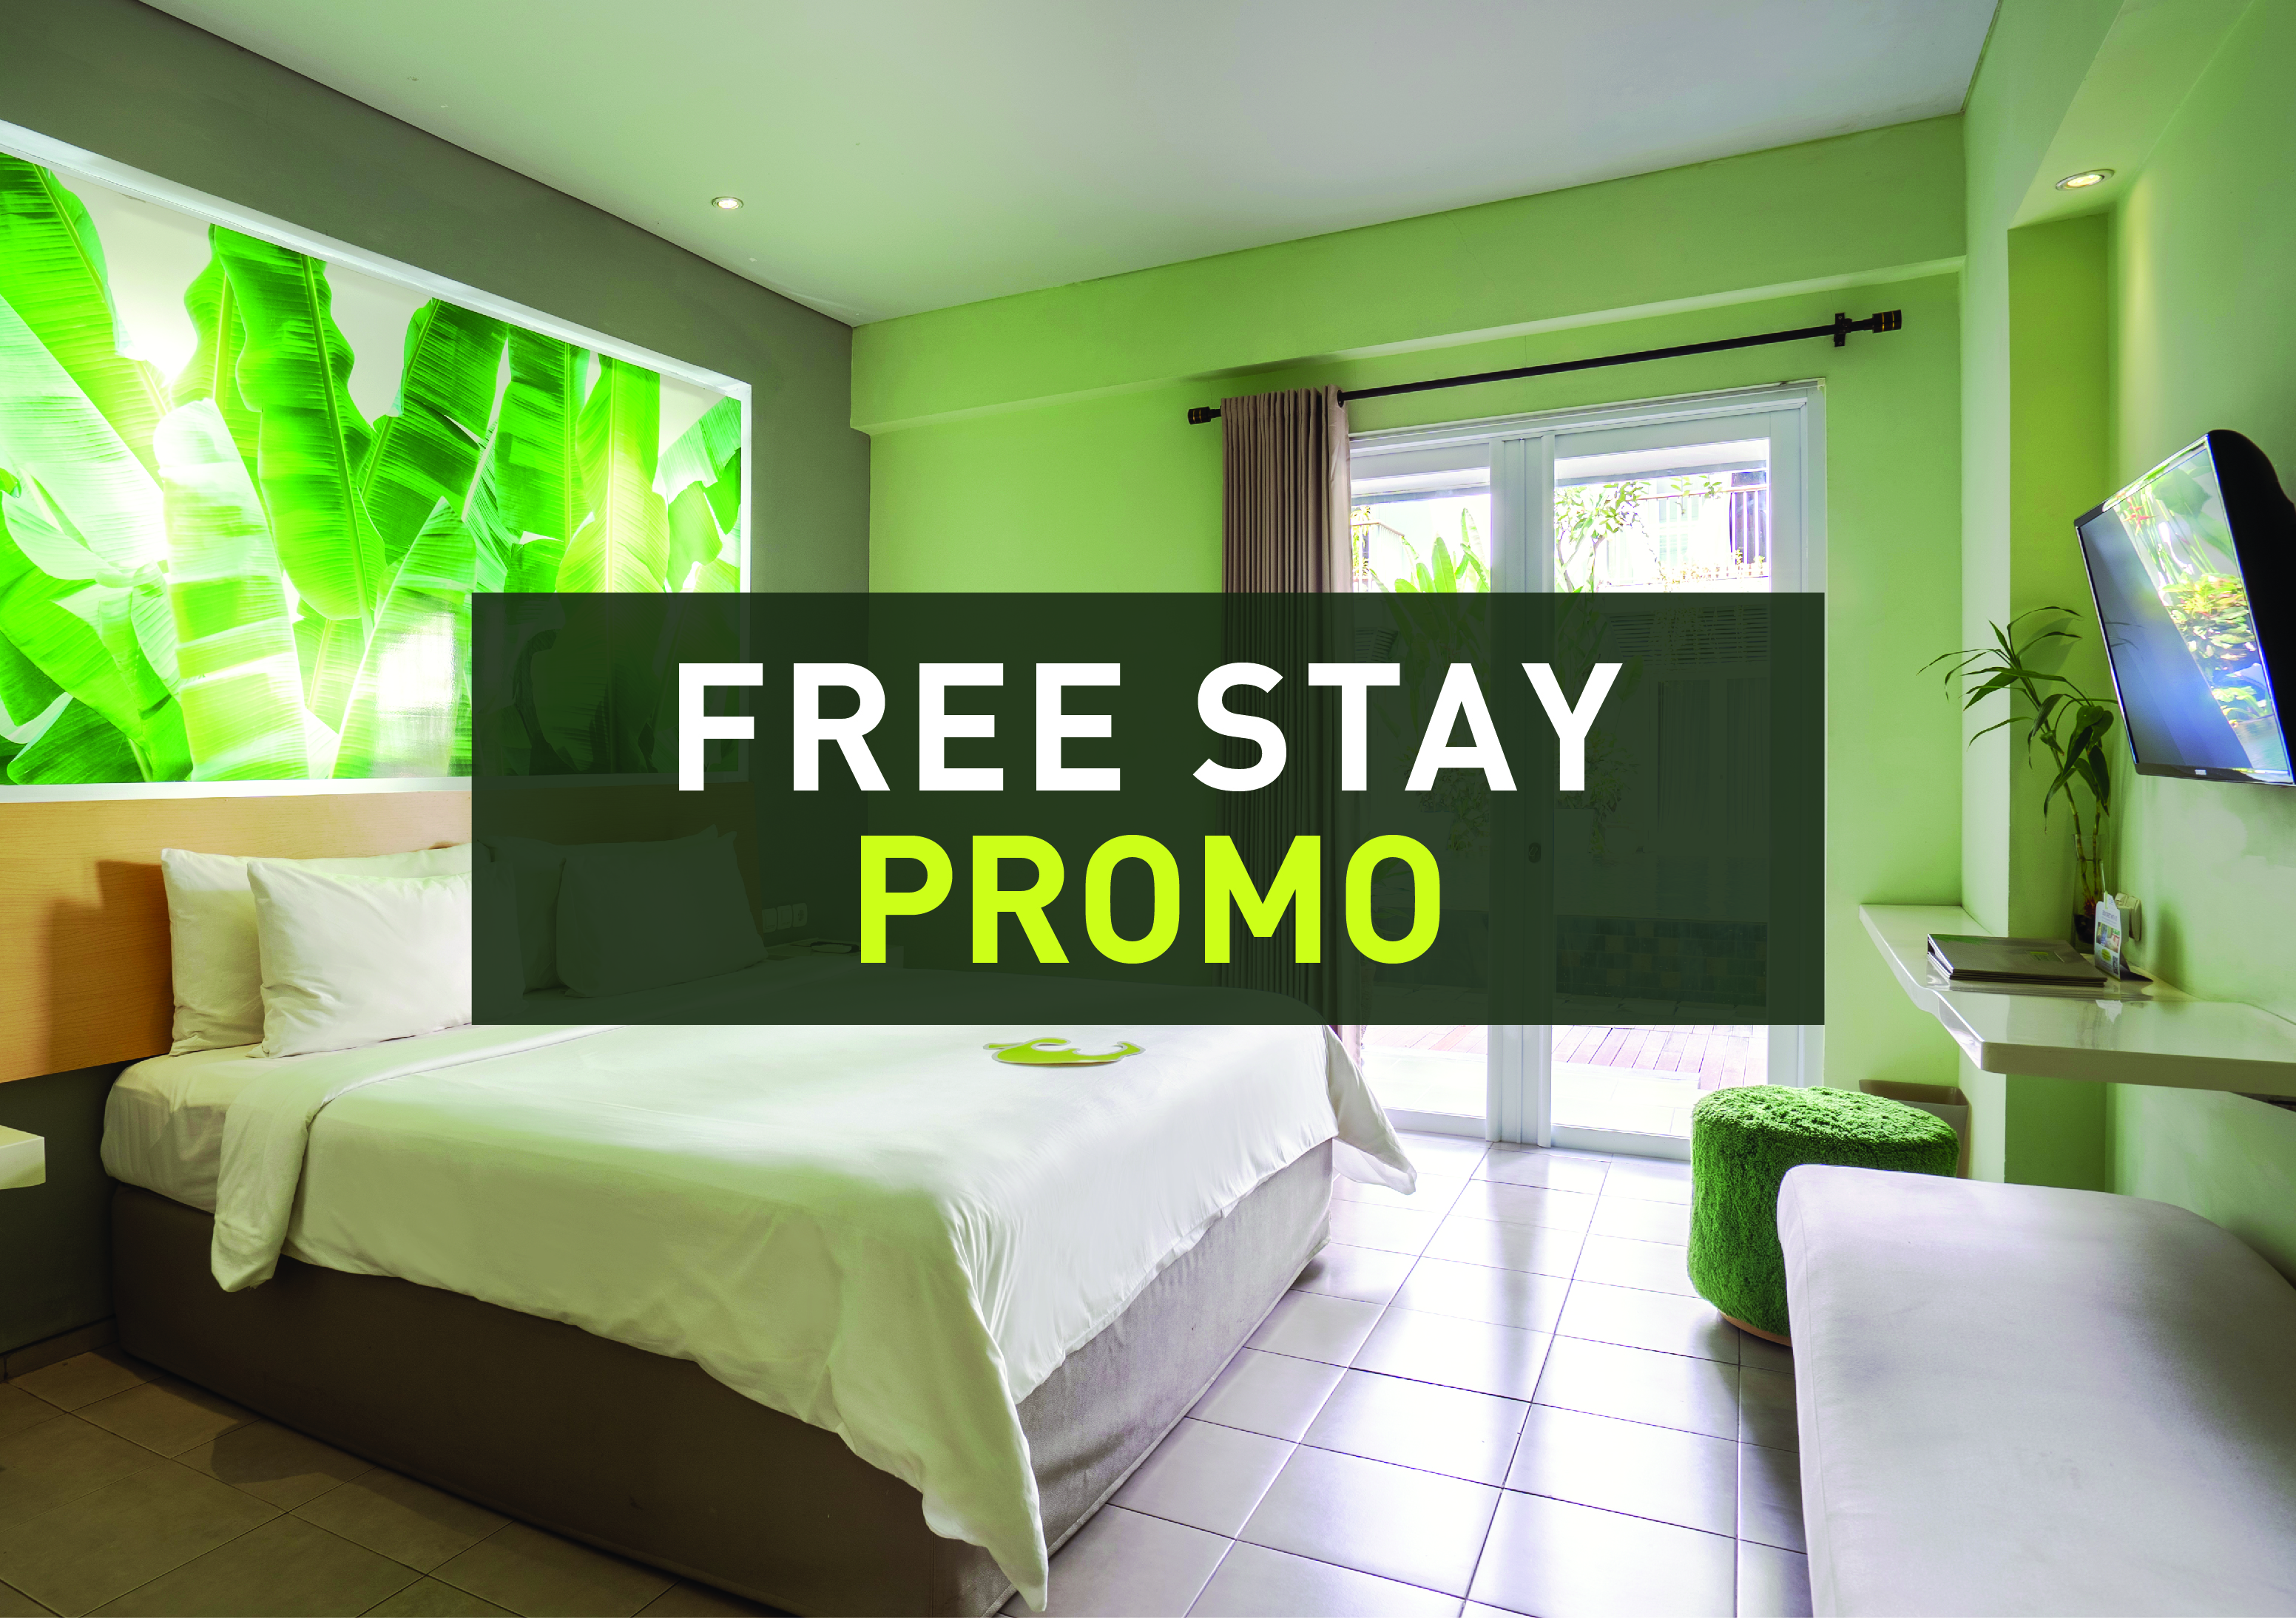 FREE STAY PROMO